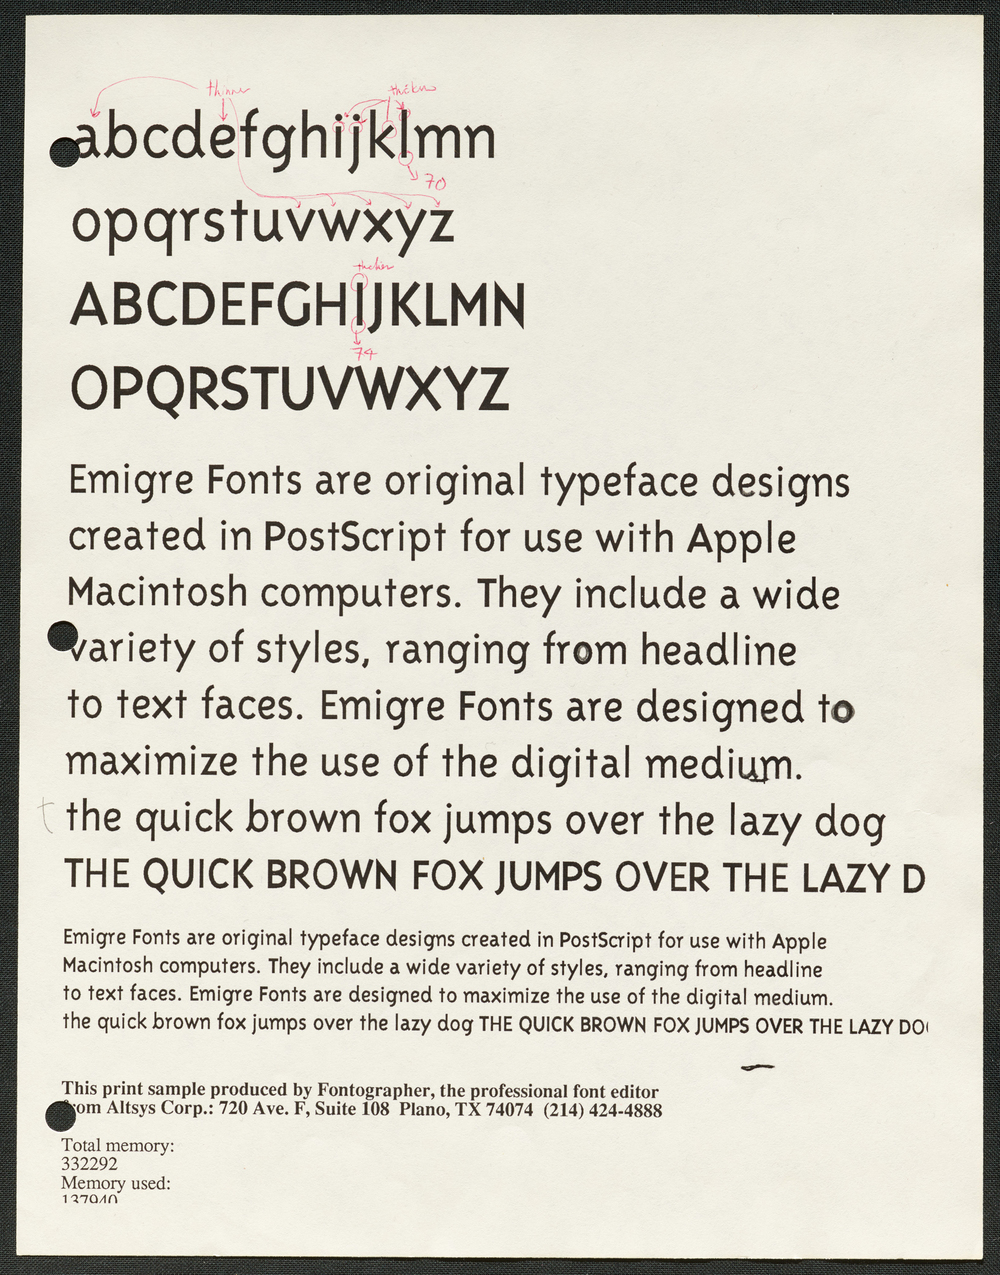 Marked-up trial proofs of Triplex typeface by Zuzana Licko, 1990